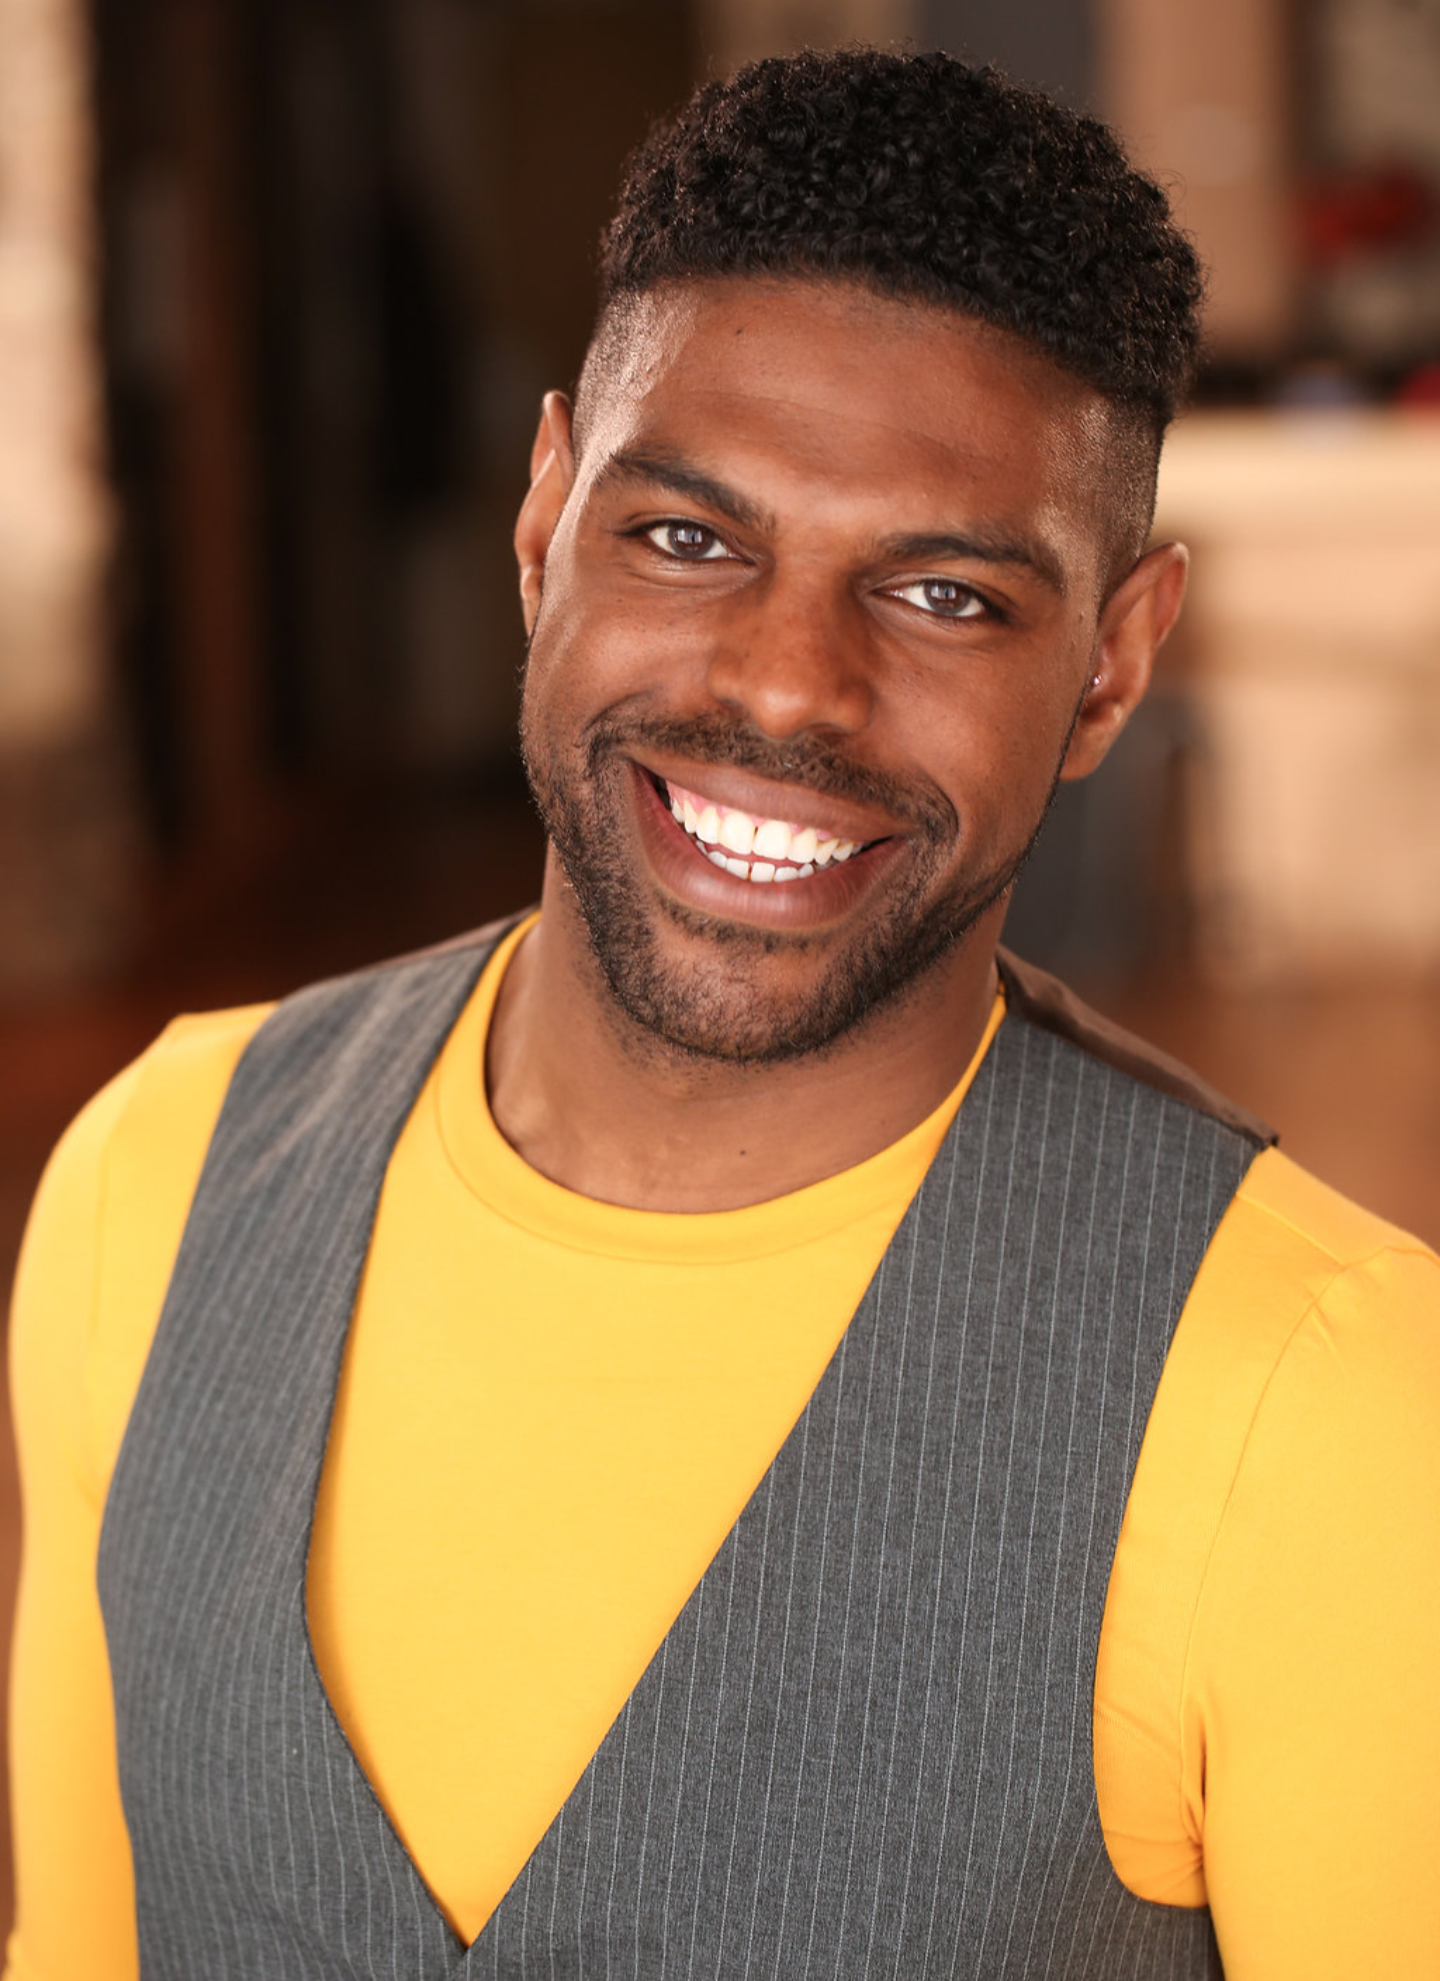 Breon Arzell (performer)